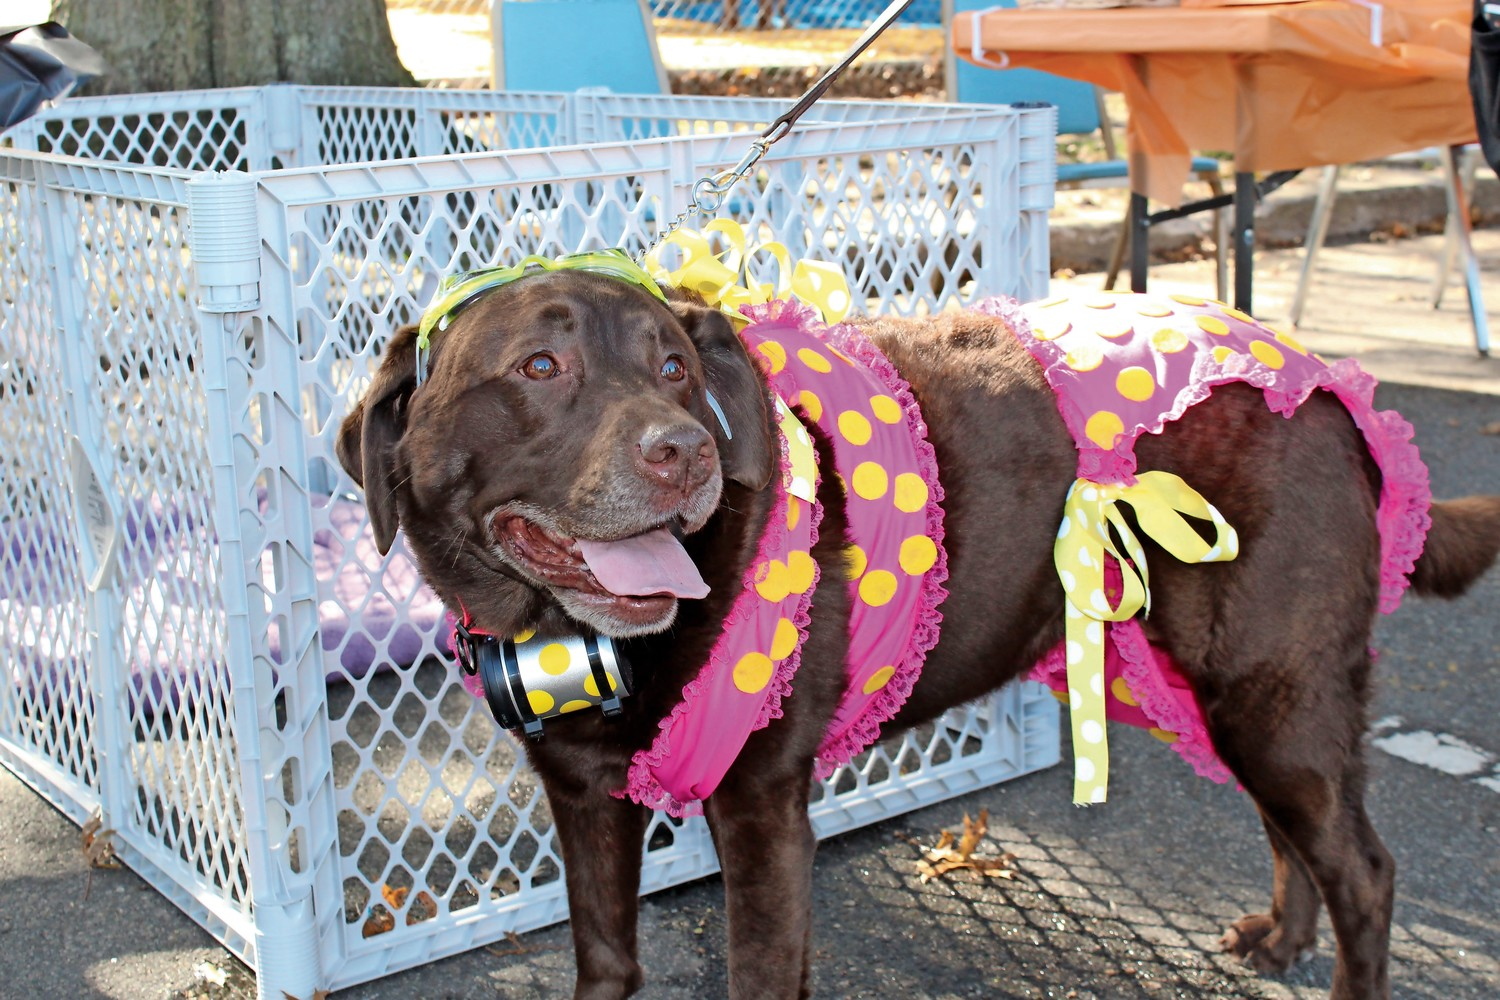 Bella Scala wore a handmade teeny-weeny itsy-bitsy yellow polka dot bikini costume with a stereo on her collar that played the song.